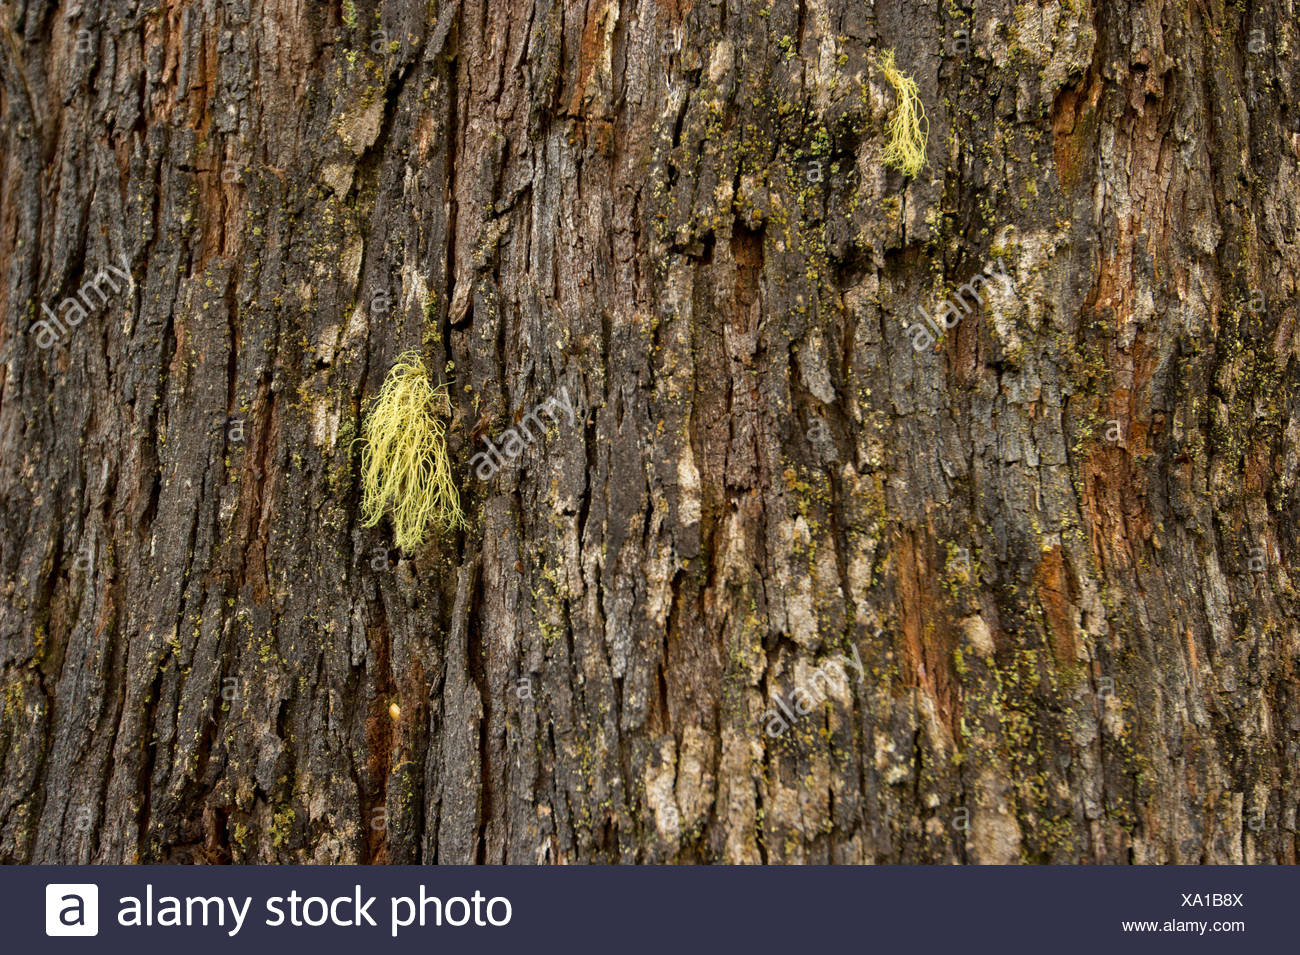 Tufts of moss grow on the trunk of a Mountain Ash, Eucalyptus regnans, 10 meters above the ground in Tasmania, Australia. - Stock Image